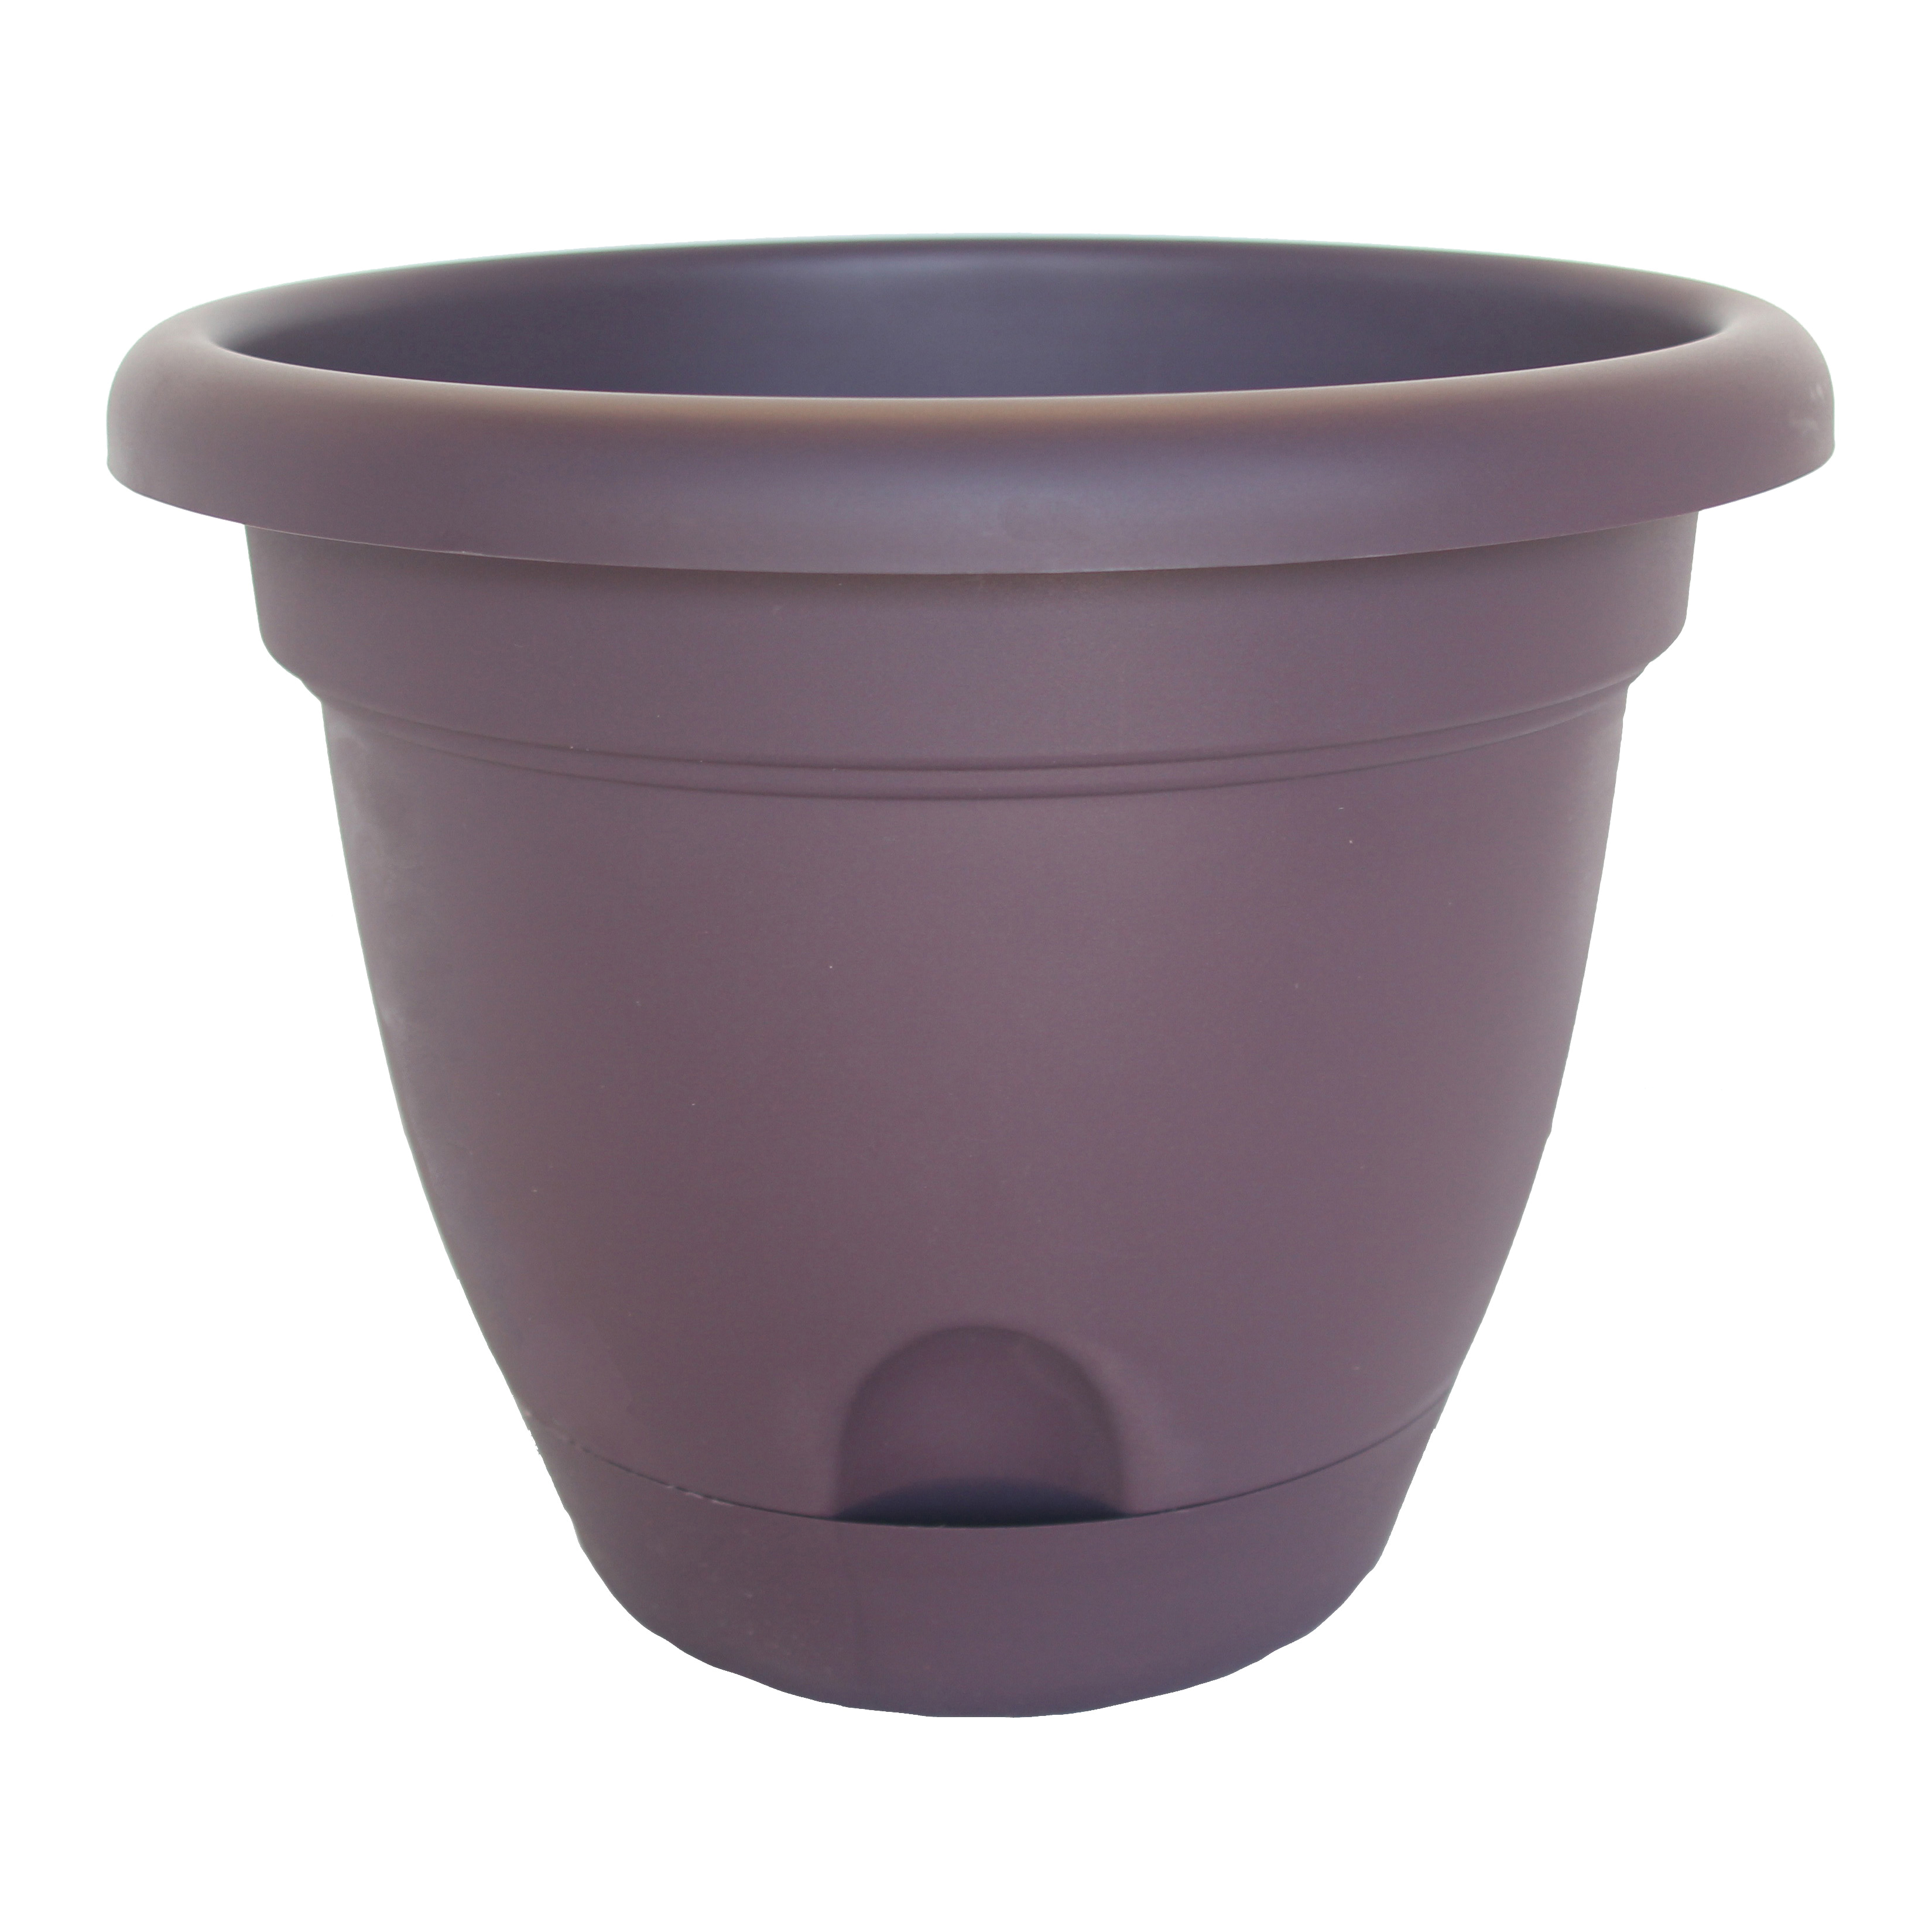 Picture of Bloem Lucca LP1256 Planter, 10.8 in W, Polypropylene, Exotica